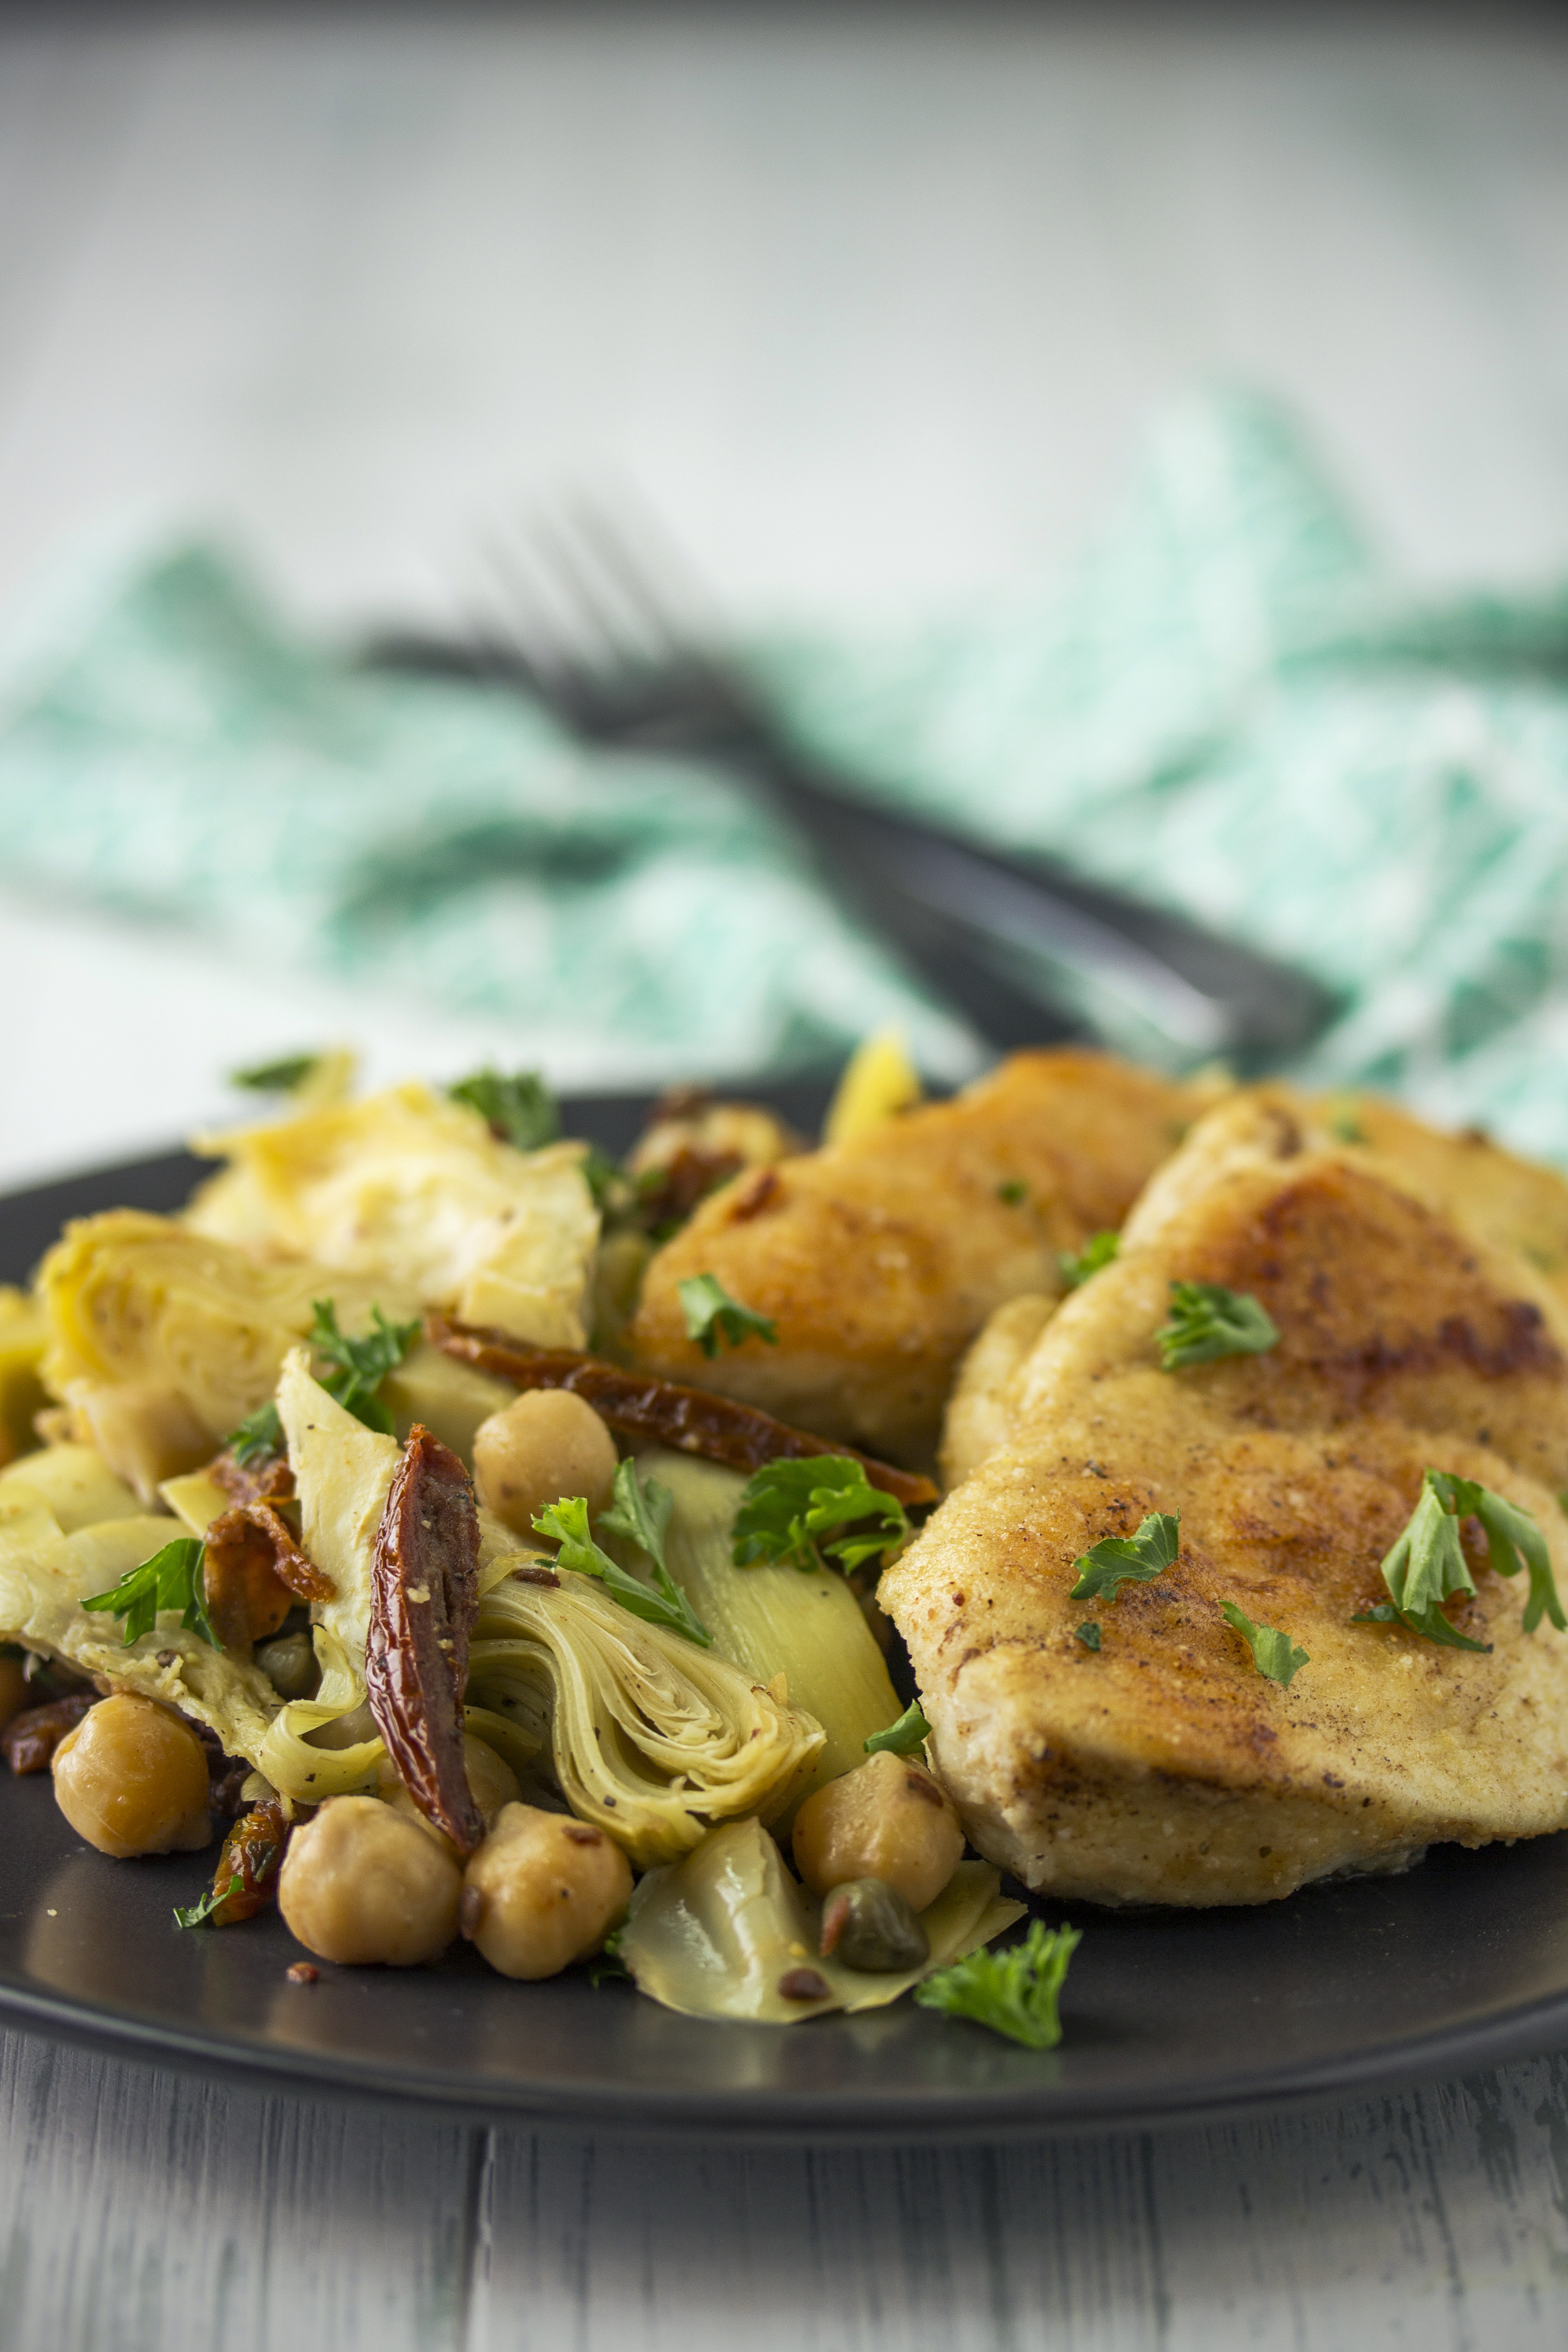 Chicken with Artichokes, Sun-Dried Tomatoes, Chickpeas and Capers